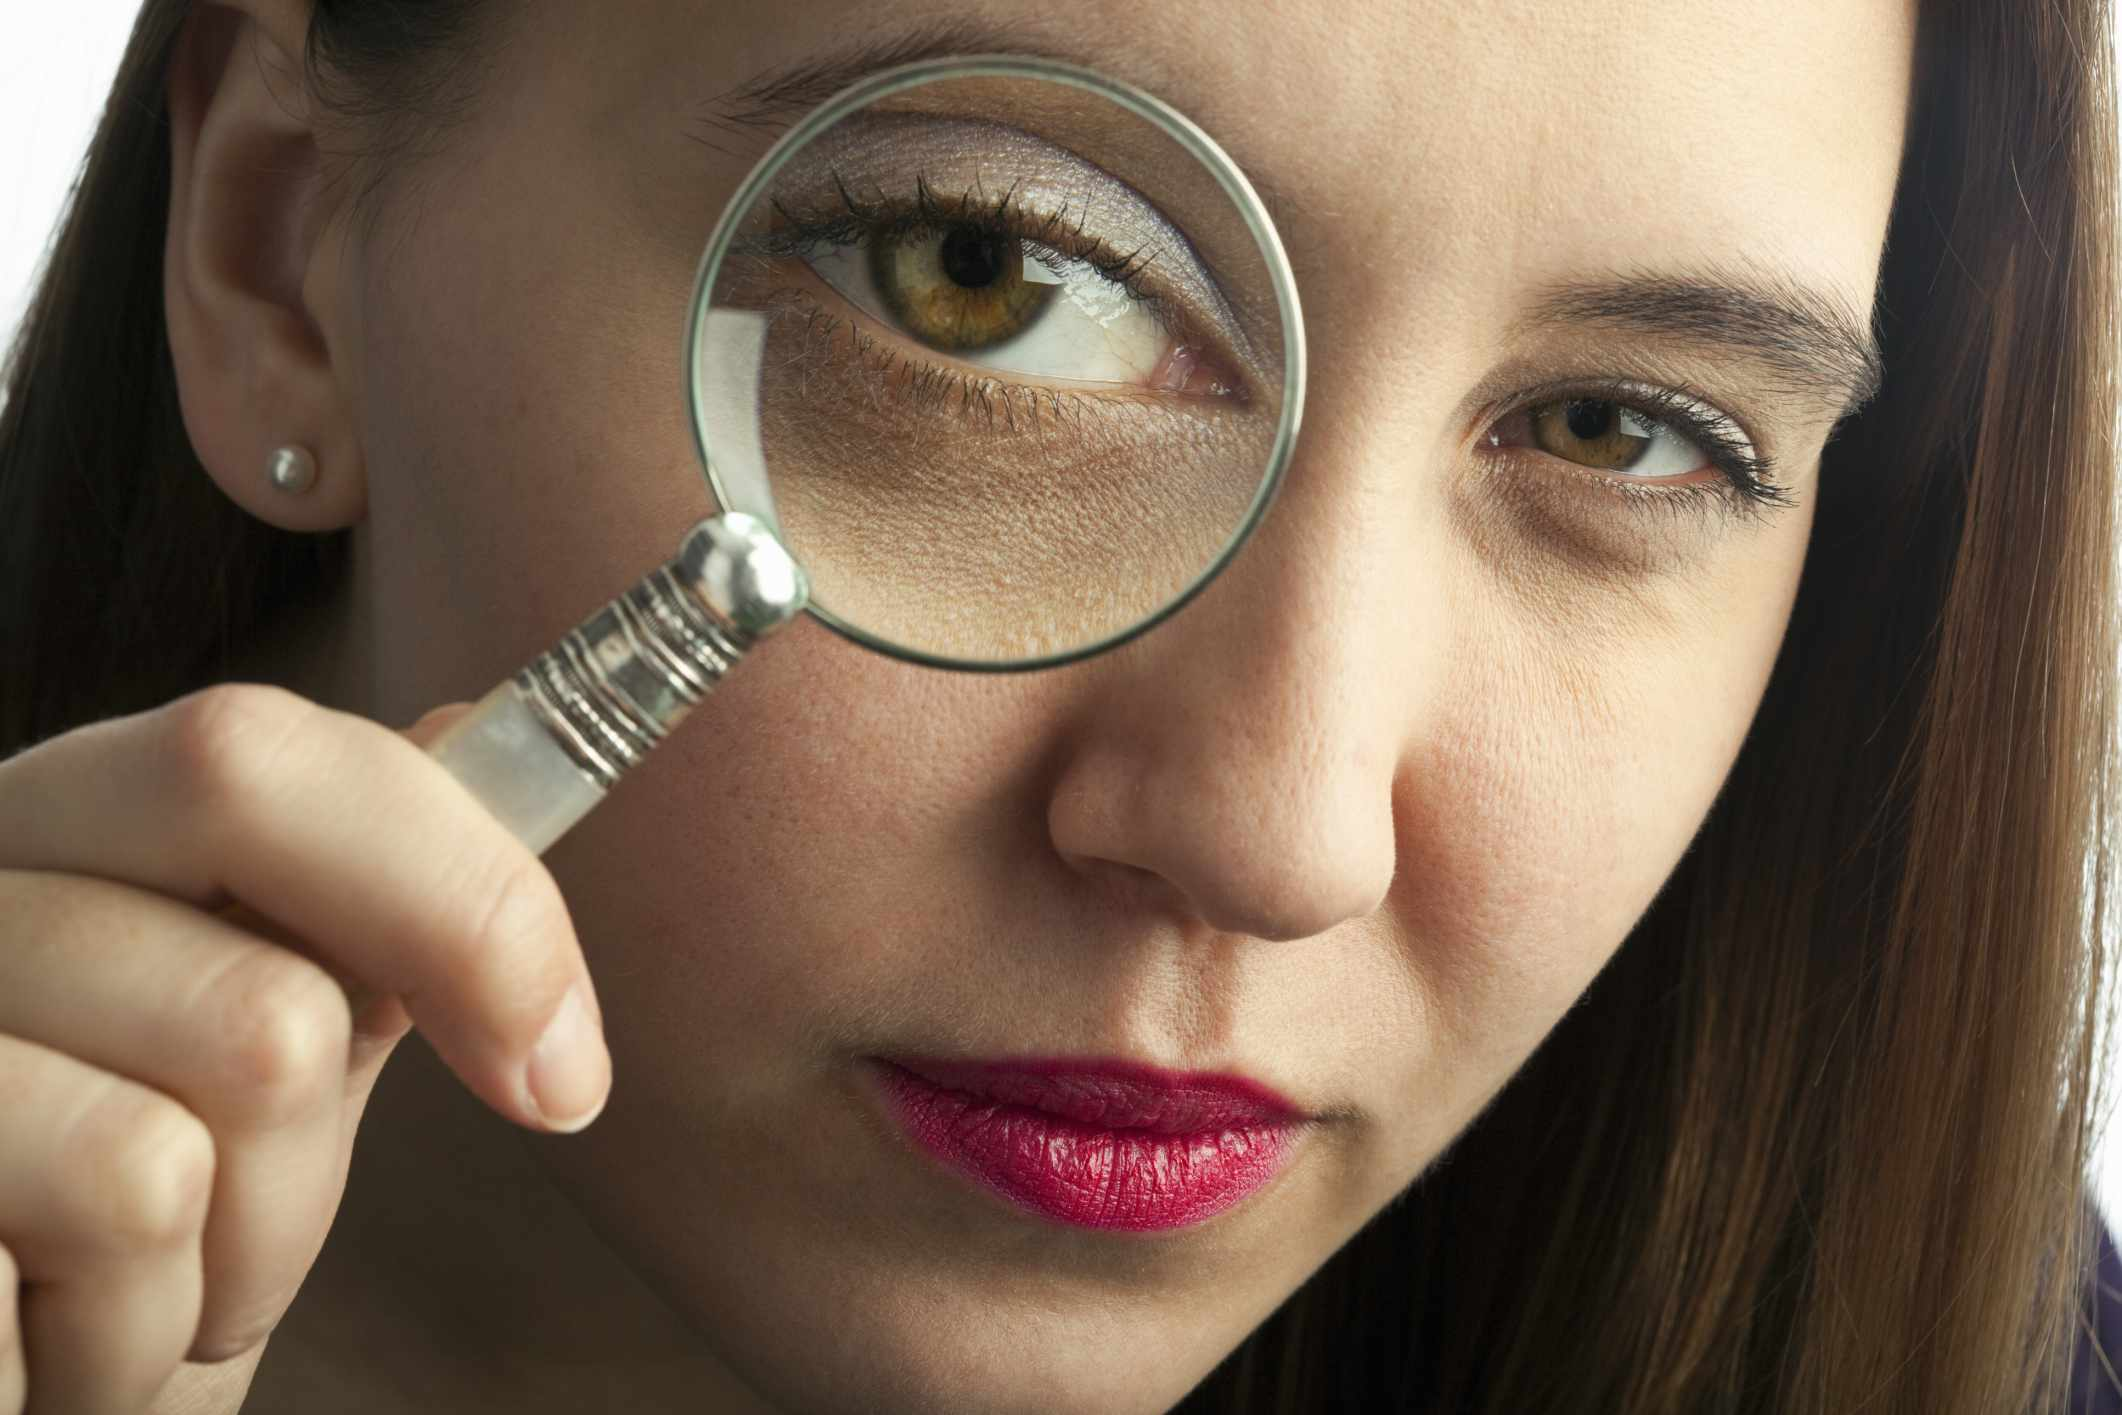 Woman holding a magnifying glass over her eye.